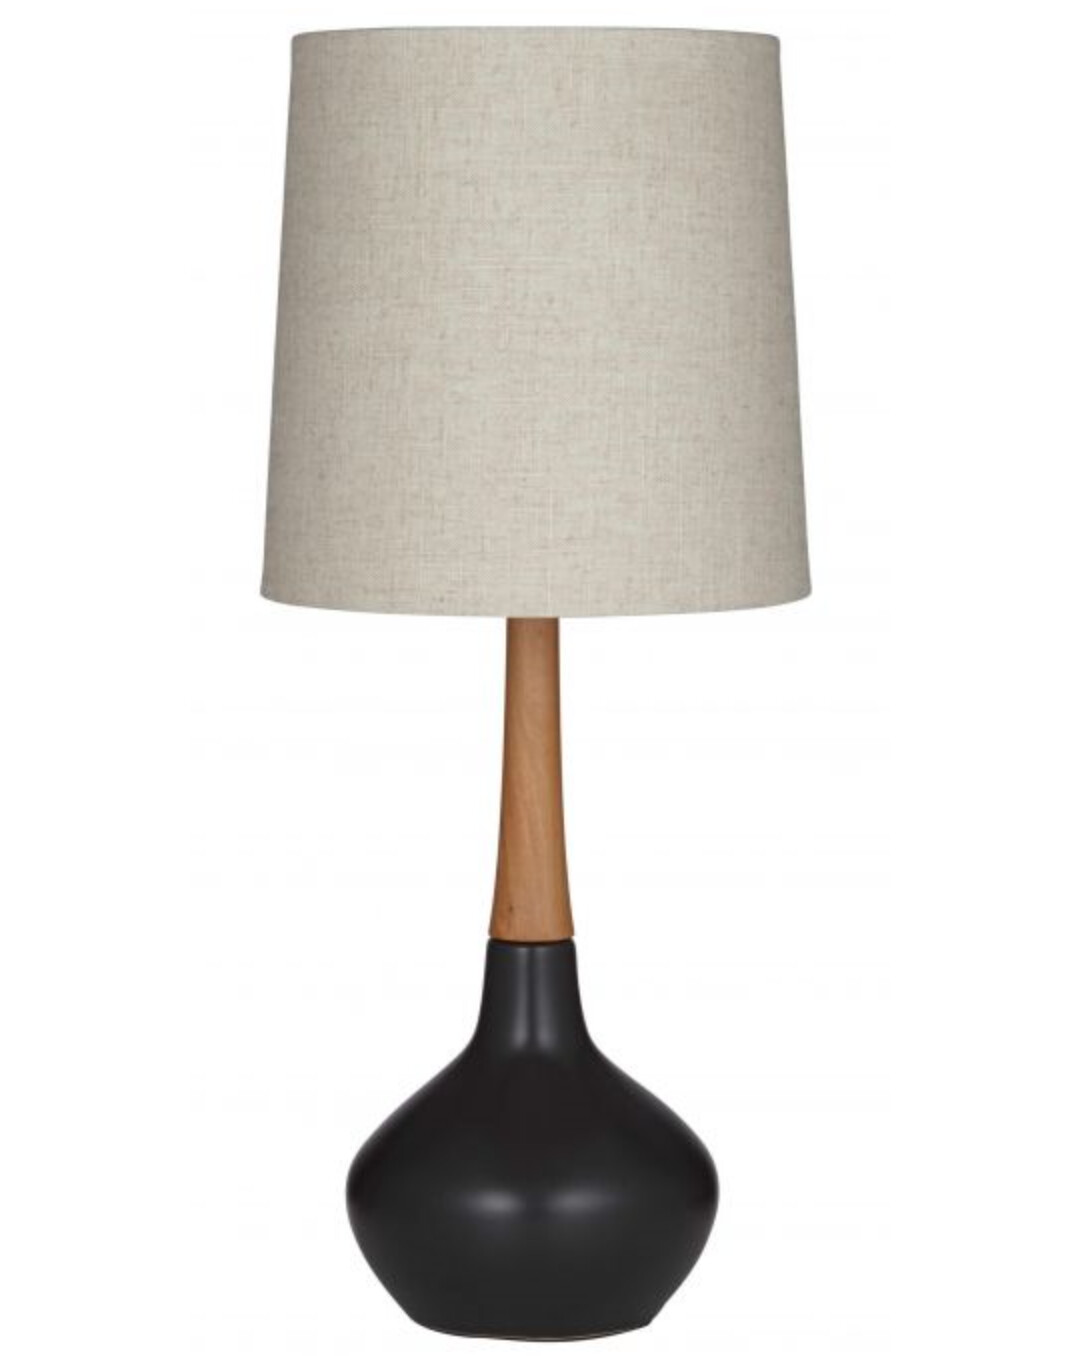 LIGHTING - TABLE LAMP BLACK